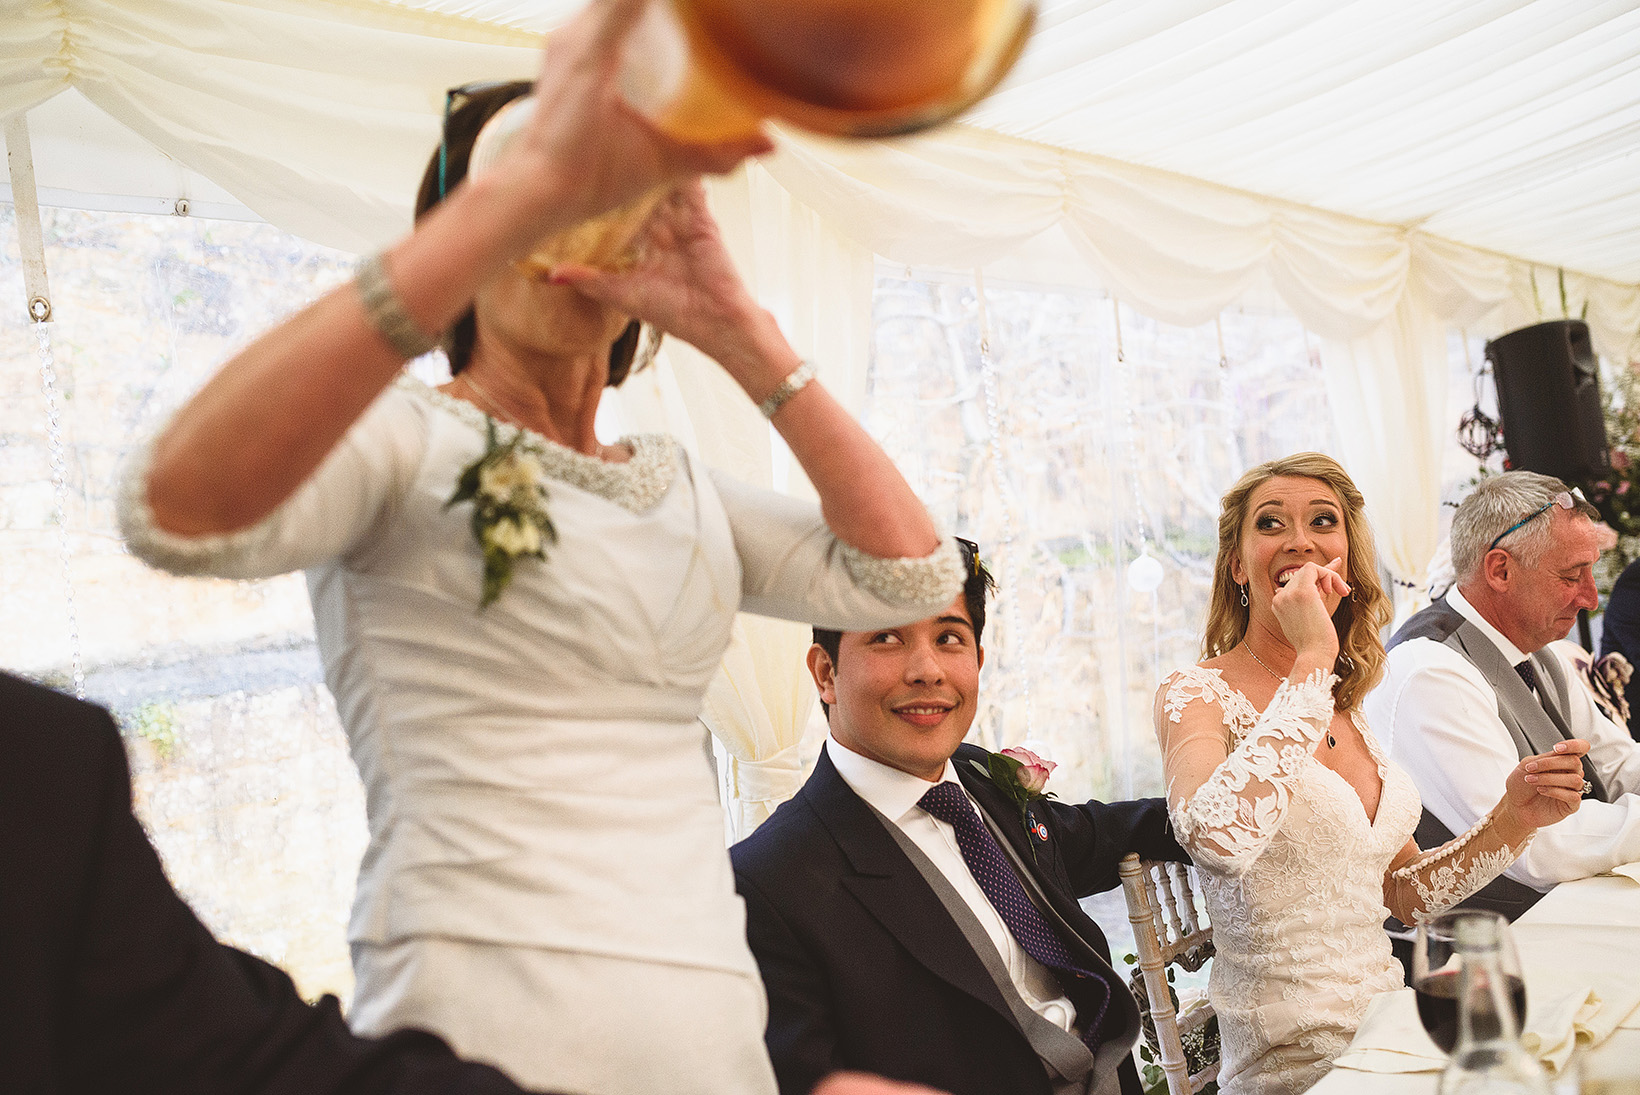 Yard of ale wedding